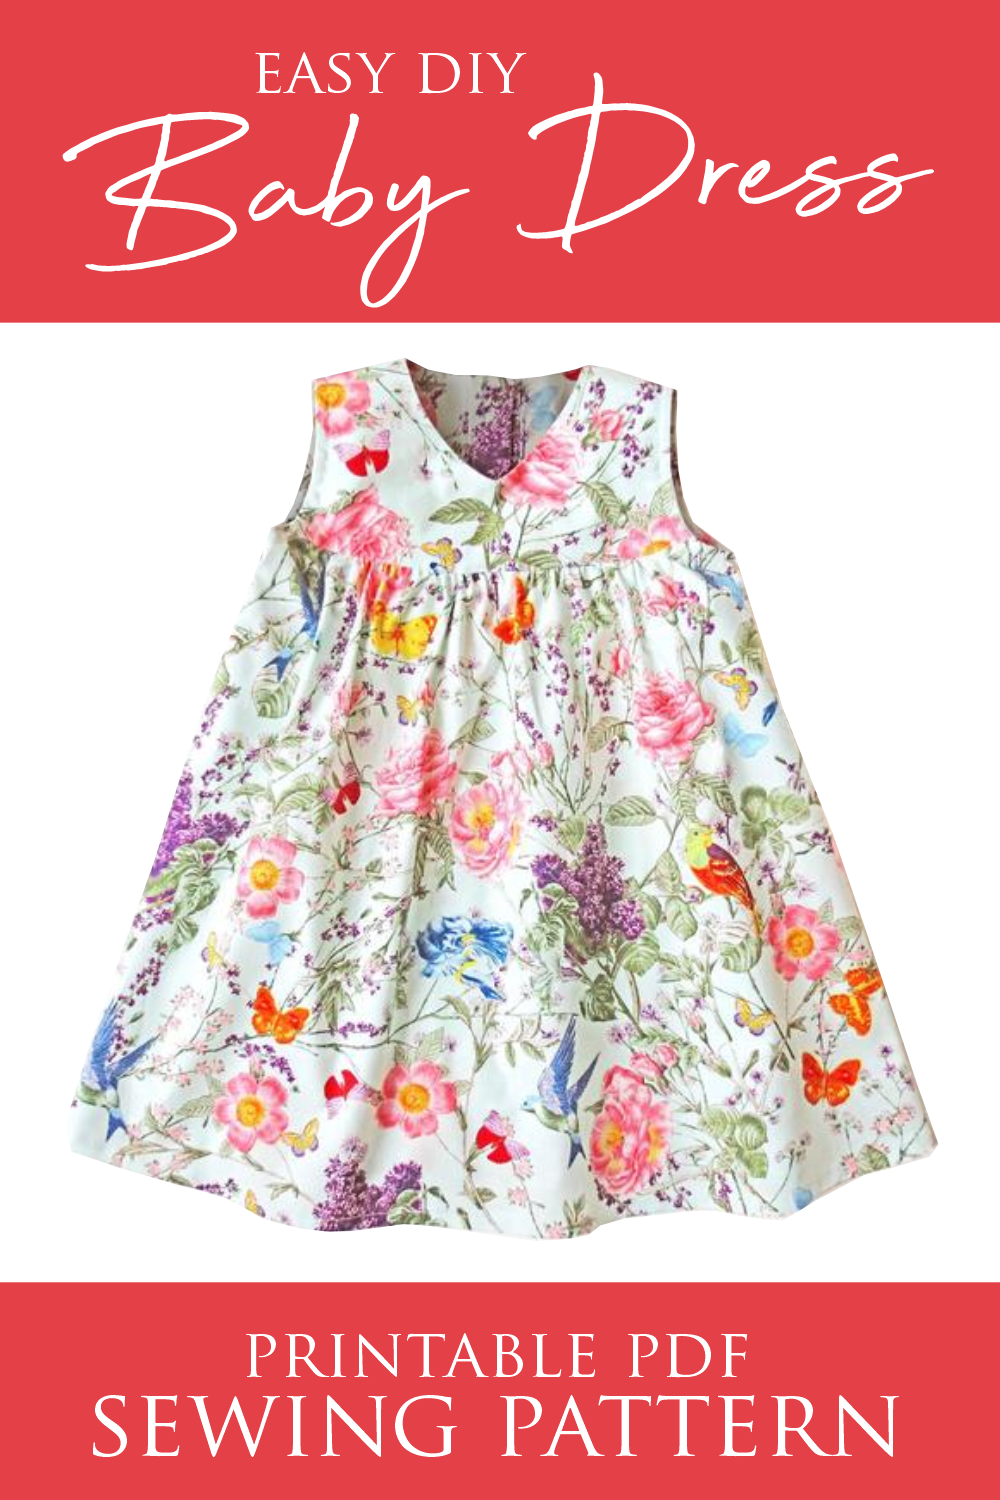 Easy Diy Baby Dress Sewing Pattern Sewenir Com In 2020 Little Girl Dress Patterns Girls Clothes Patterns Toddler Dress Patterns